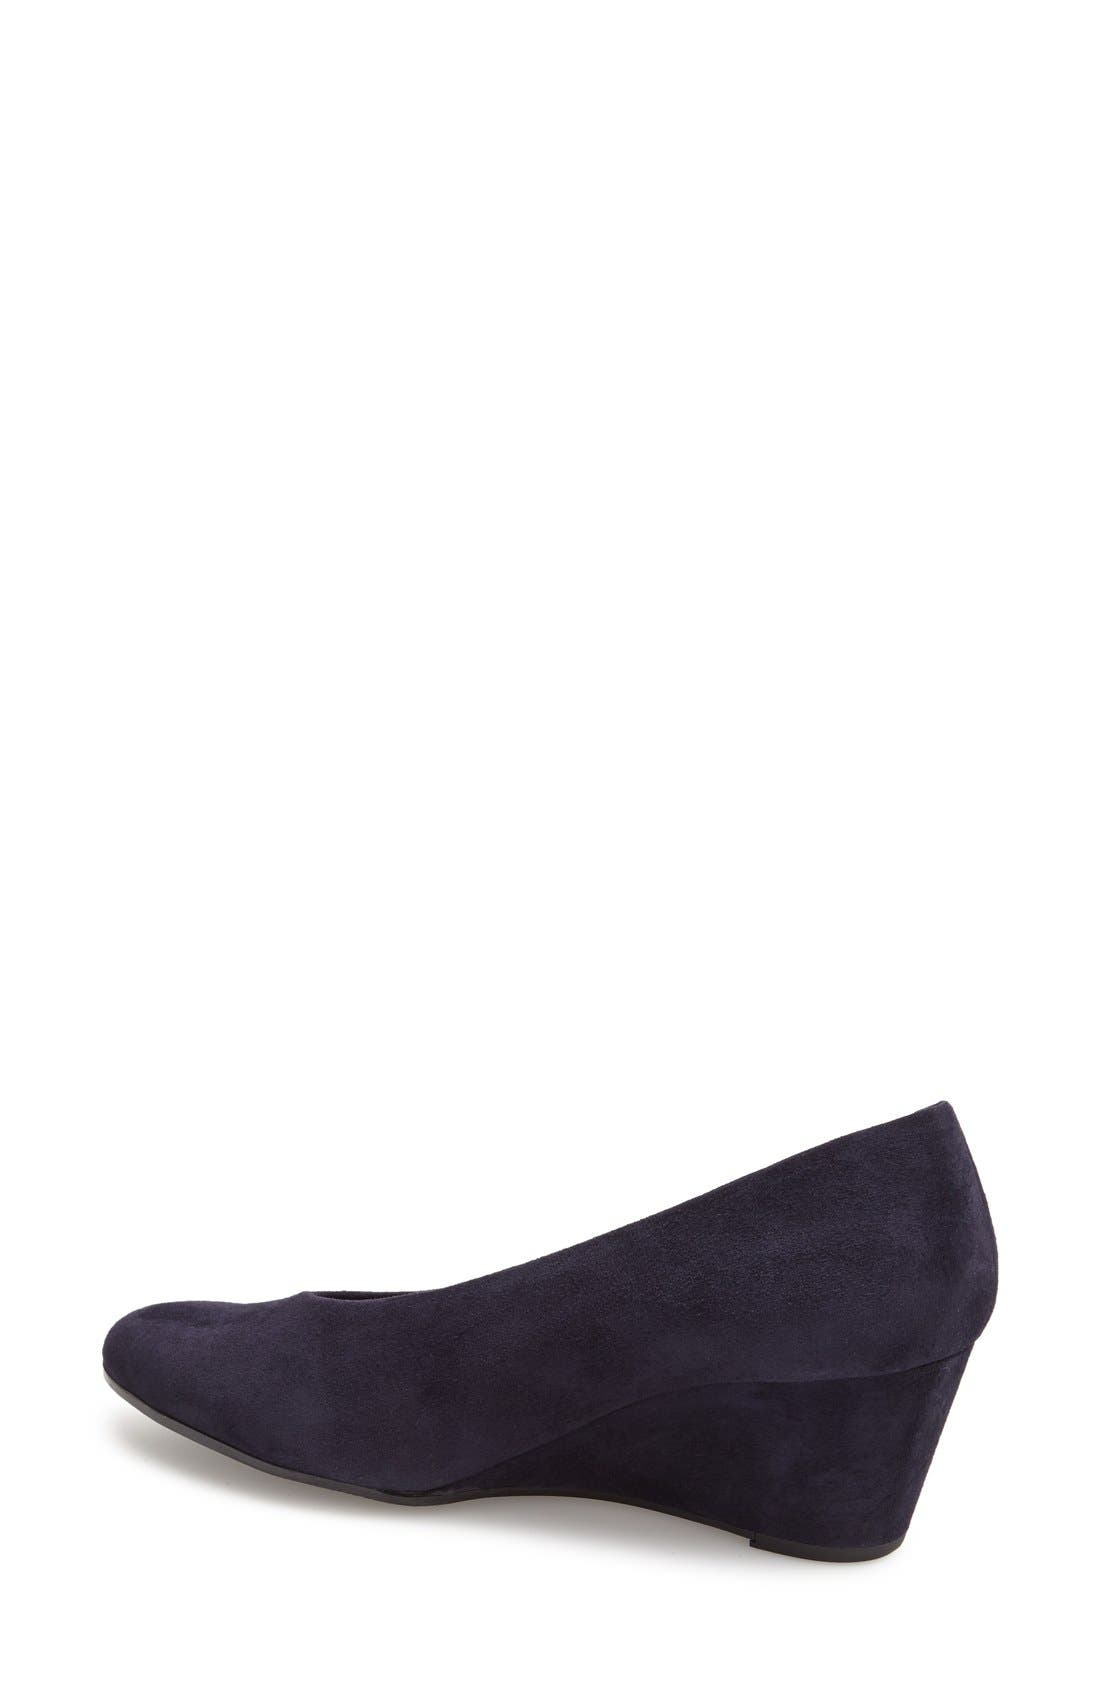 Alternate Image 2  - VANELi 'Dilys' Wedge Pump (Women)